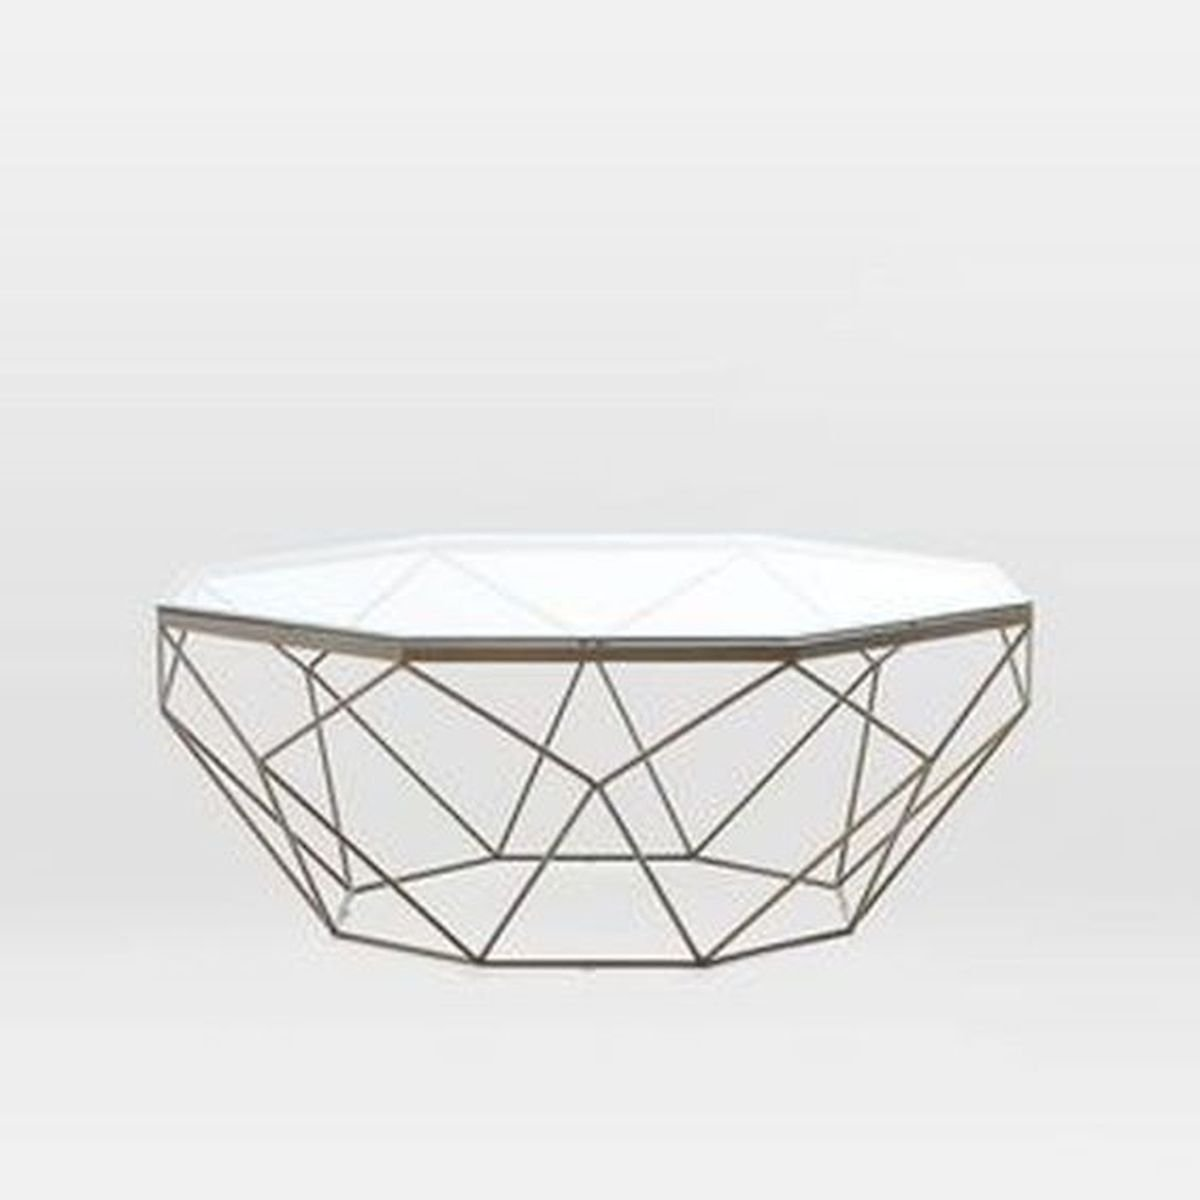 40 Awesome Modern Glass Coffee Table Design Ideas For Your Living Room (5)